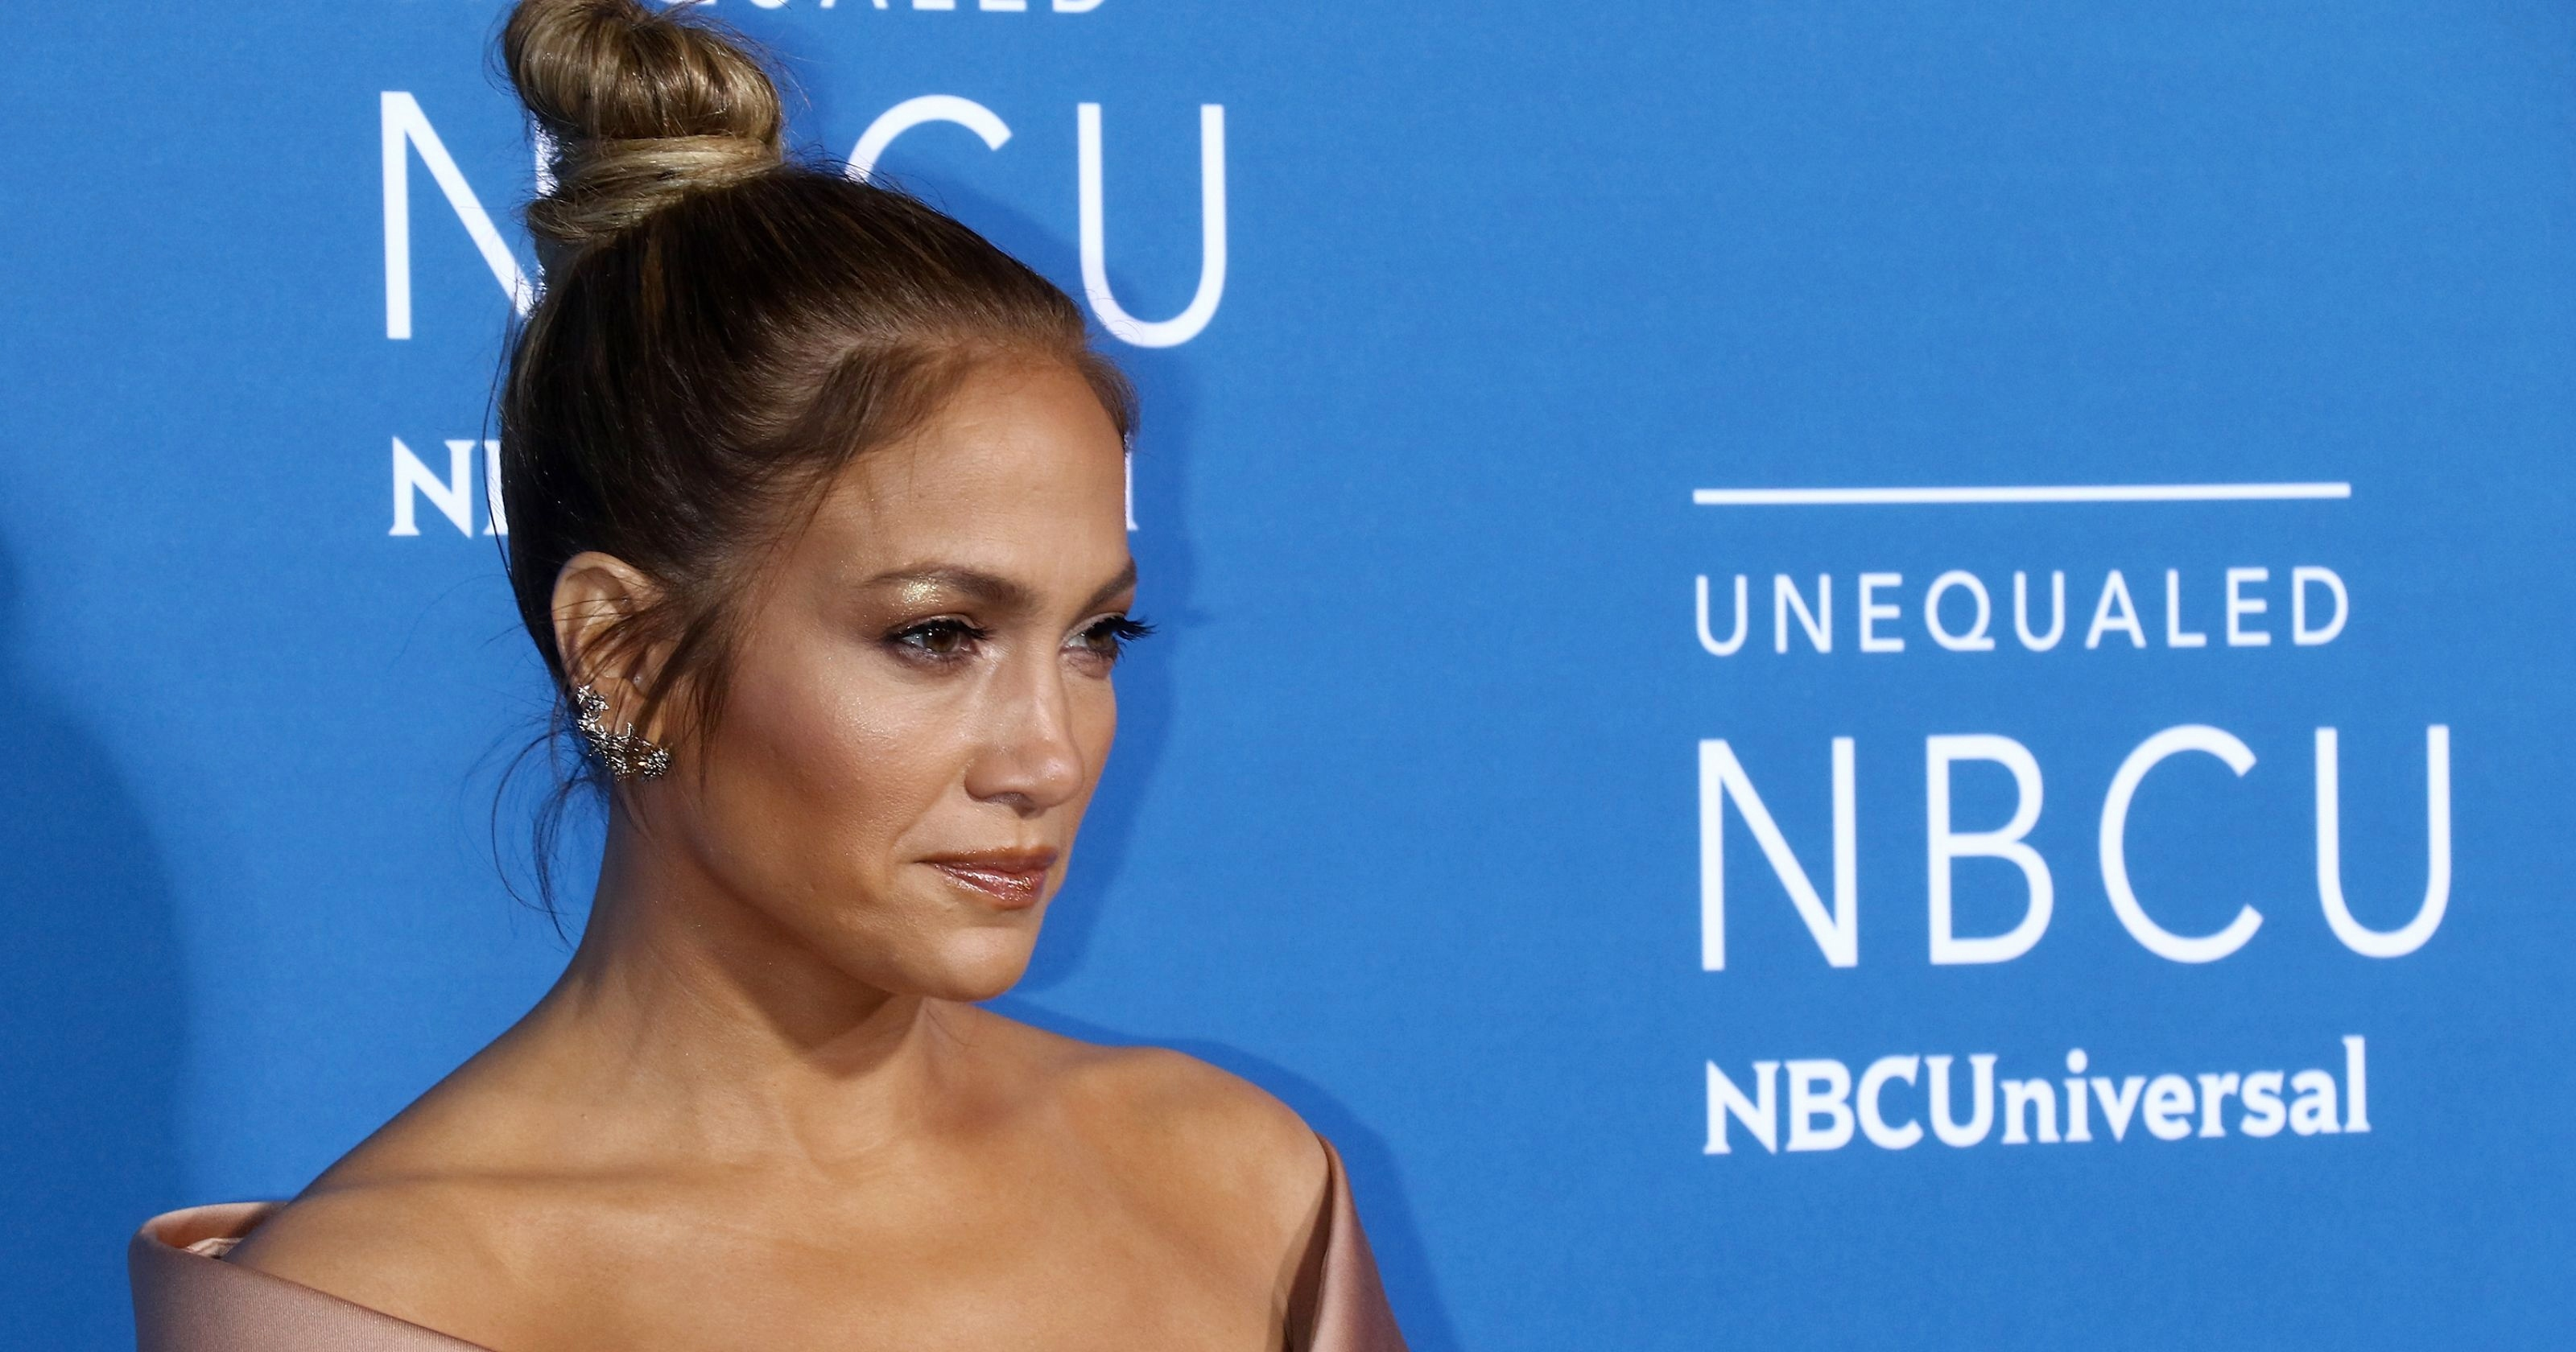 jennifer lopez birthday card ; sexy-birthday-cards-for-women-new-jennifer-lopez-celebrates-birthday-with-a-rod-in-see-through-of-sexy-birthday-cards-for-women